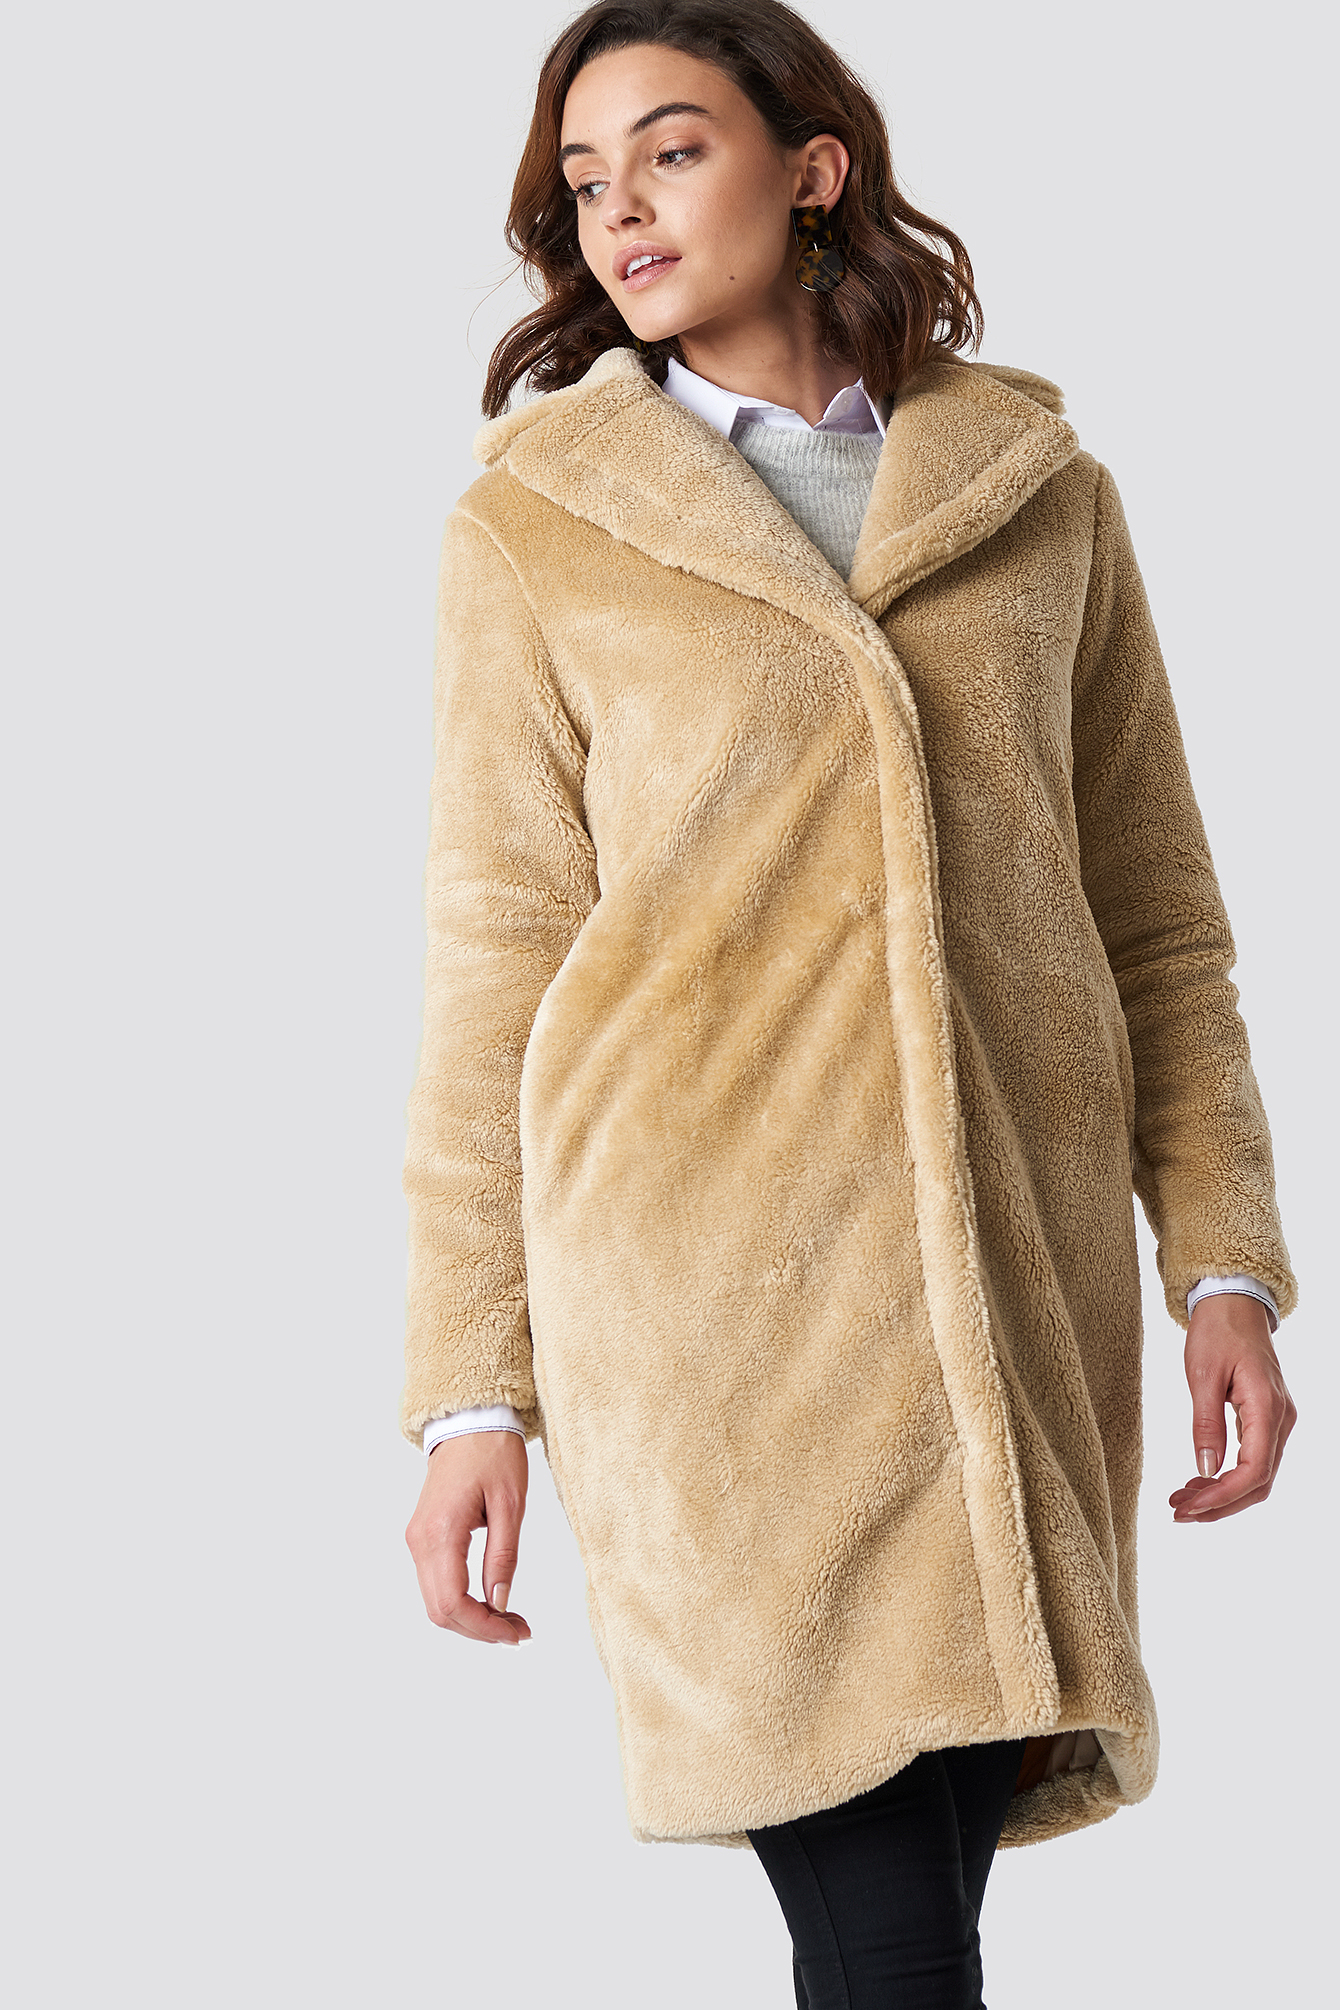 moves -  Ranee Coat - Beige